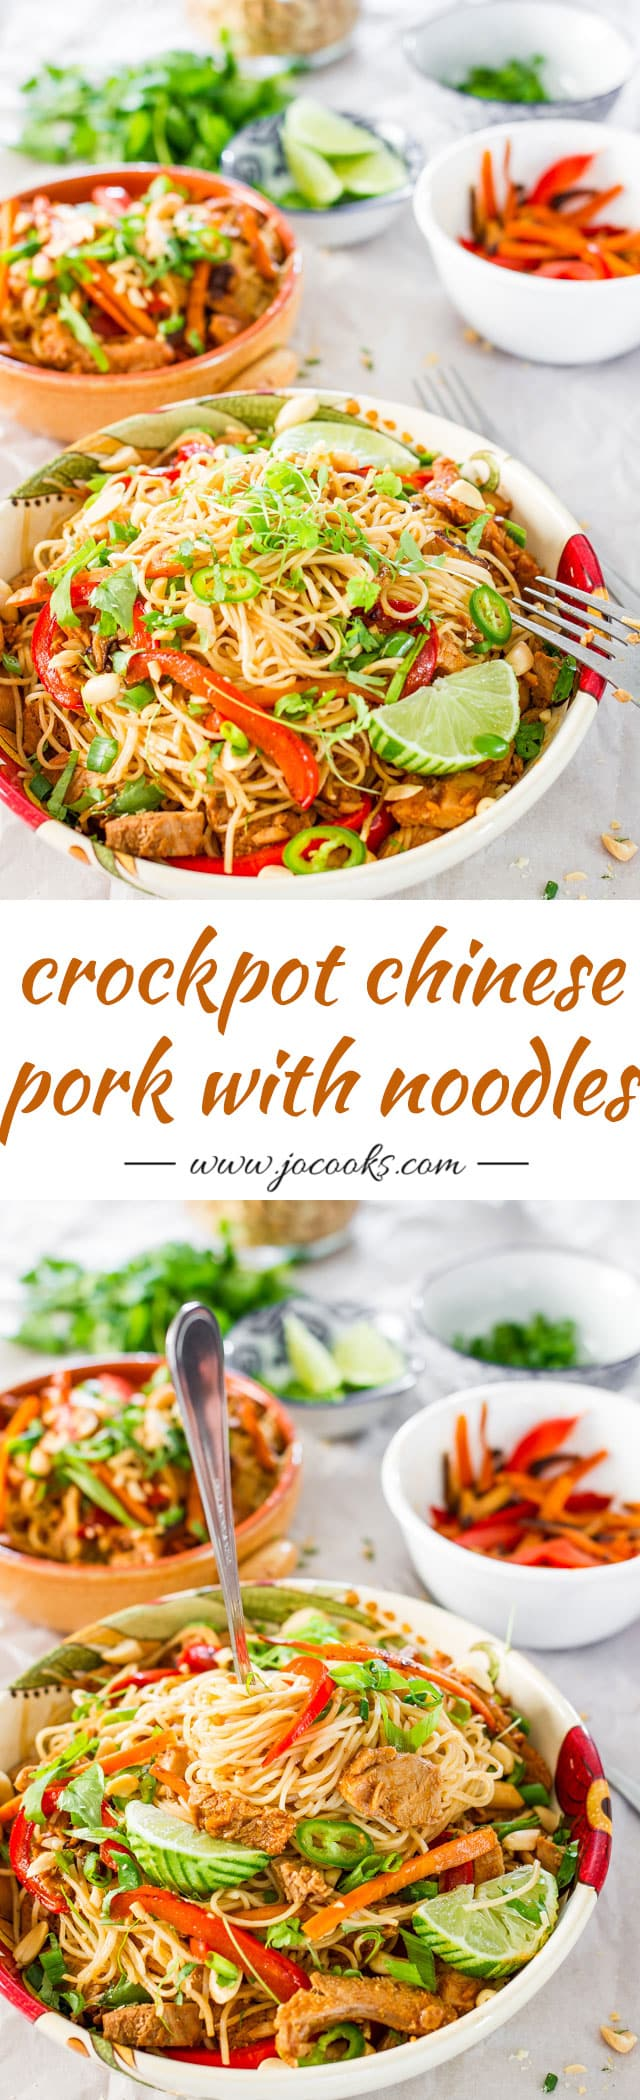 crockpot-chinese-pork-with-noodles-collage